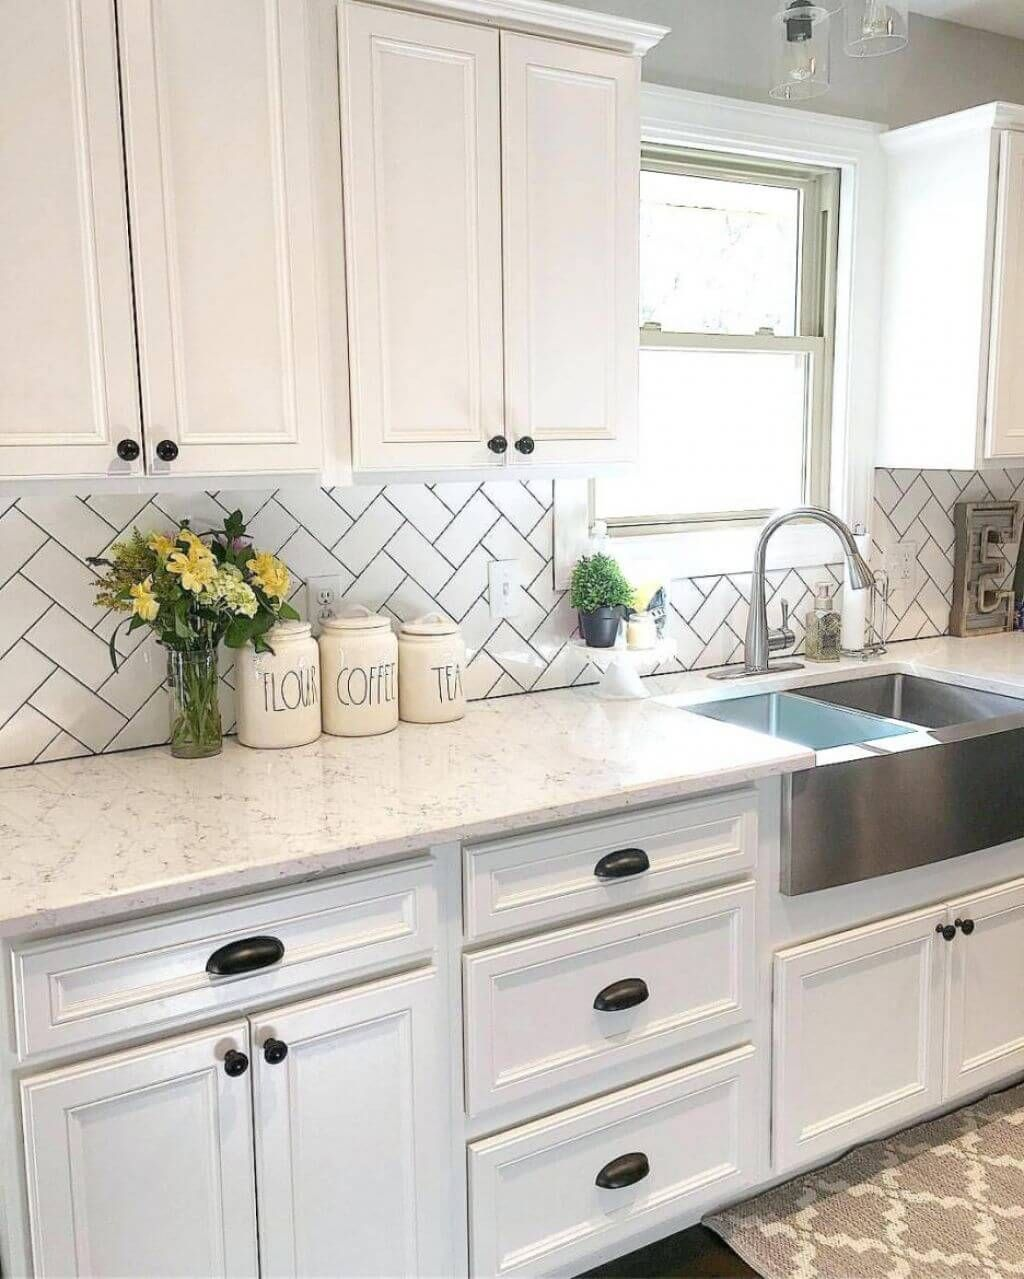 10 Country Kitchen Cabinet Ideas 2021 (the Homey Model ...